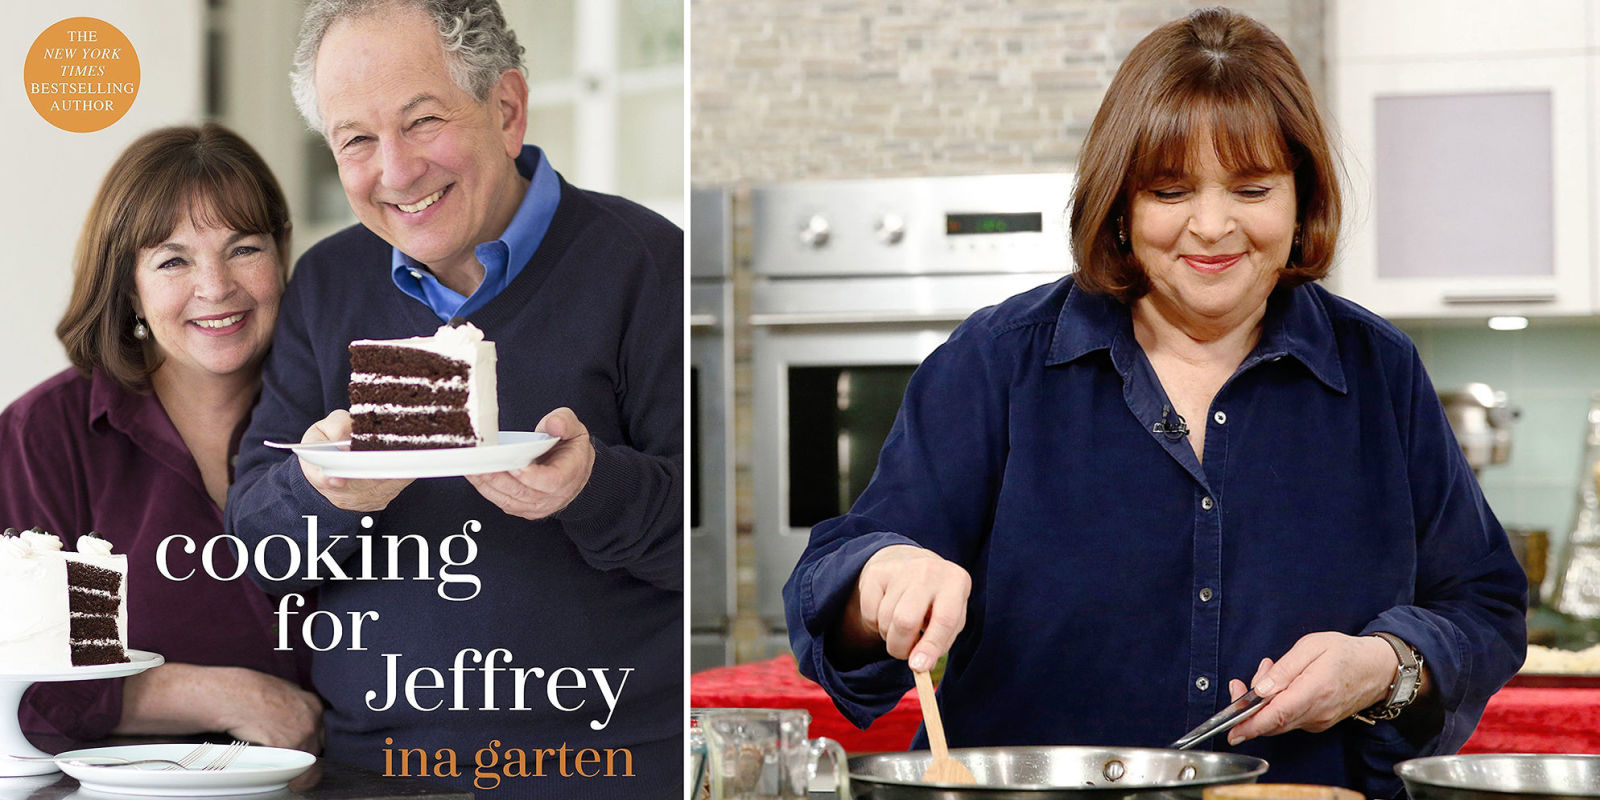 Barefoot contessa ina garten 39 s cookbook cooking for - Best ina garten cookbook ...